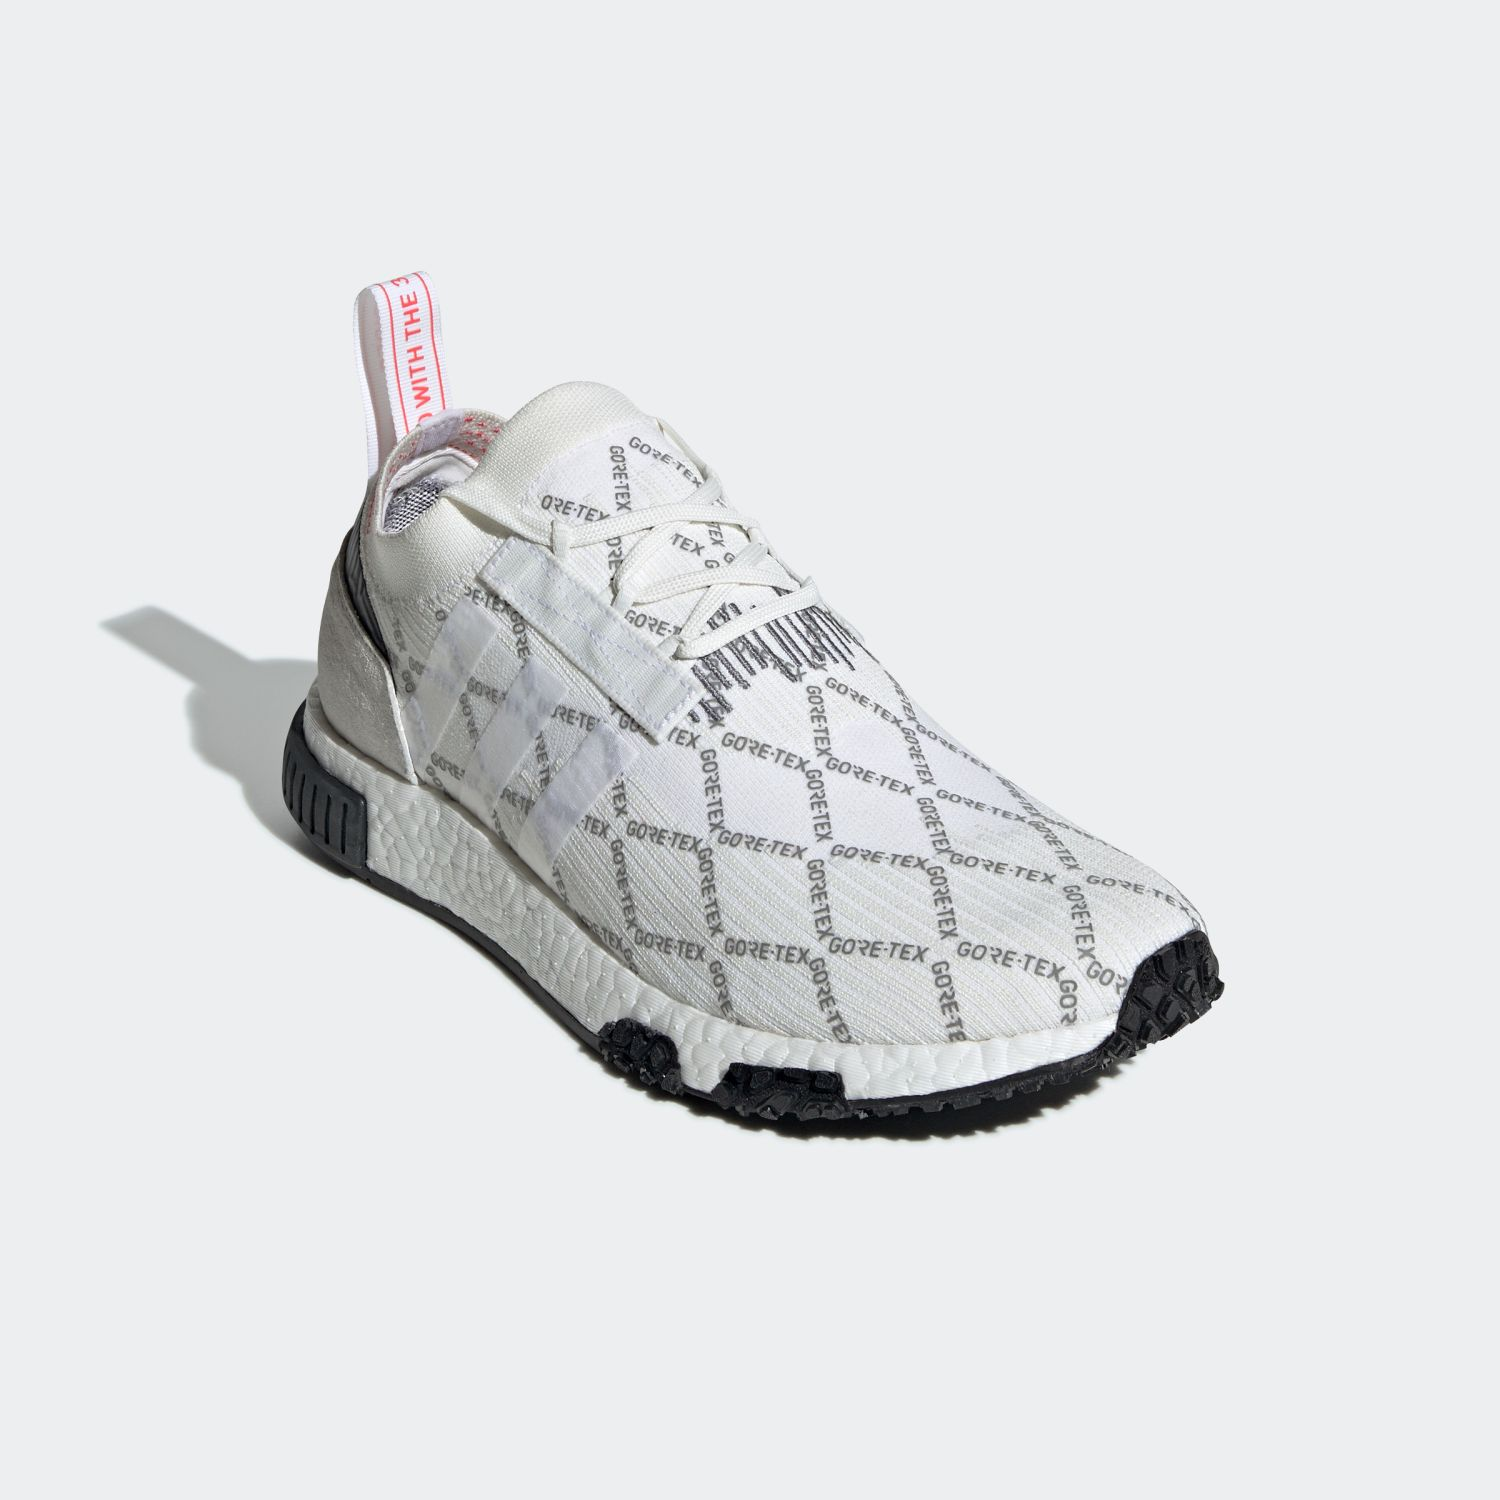 NMD Racer GORE-TEX White [4]